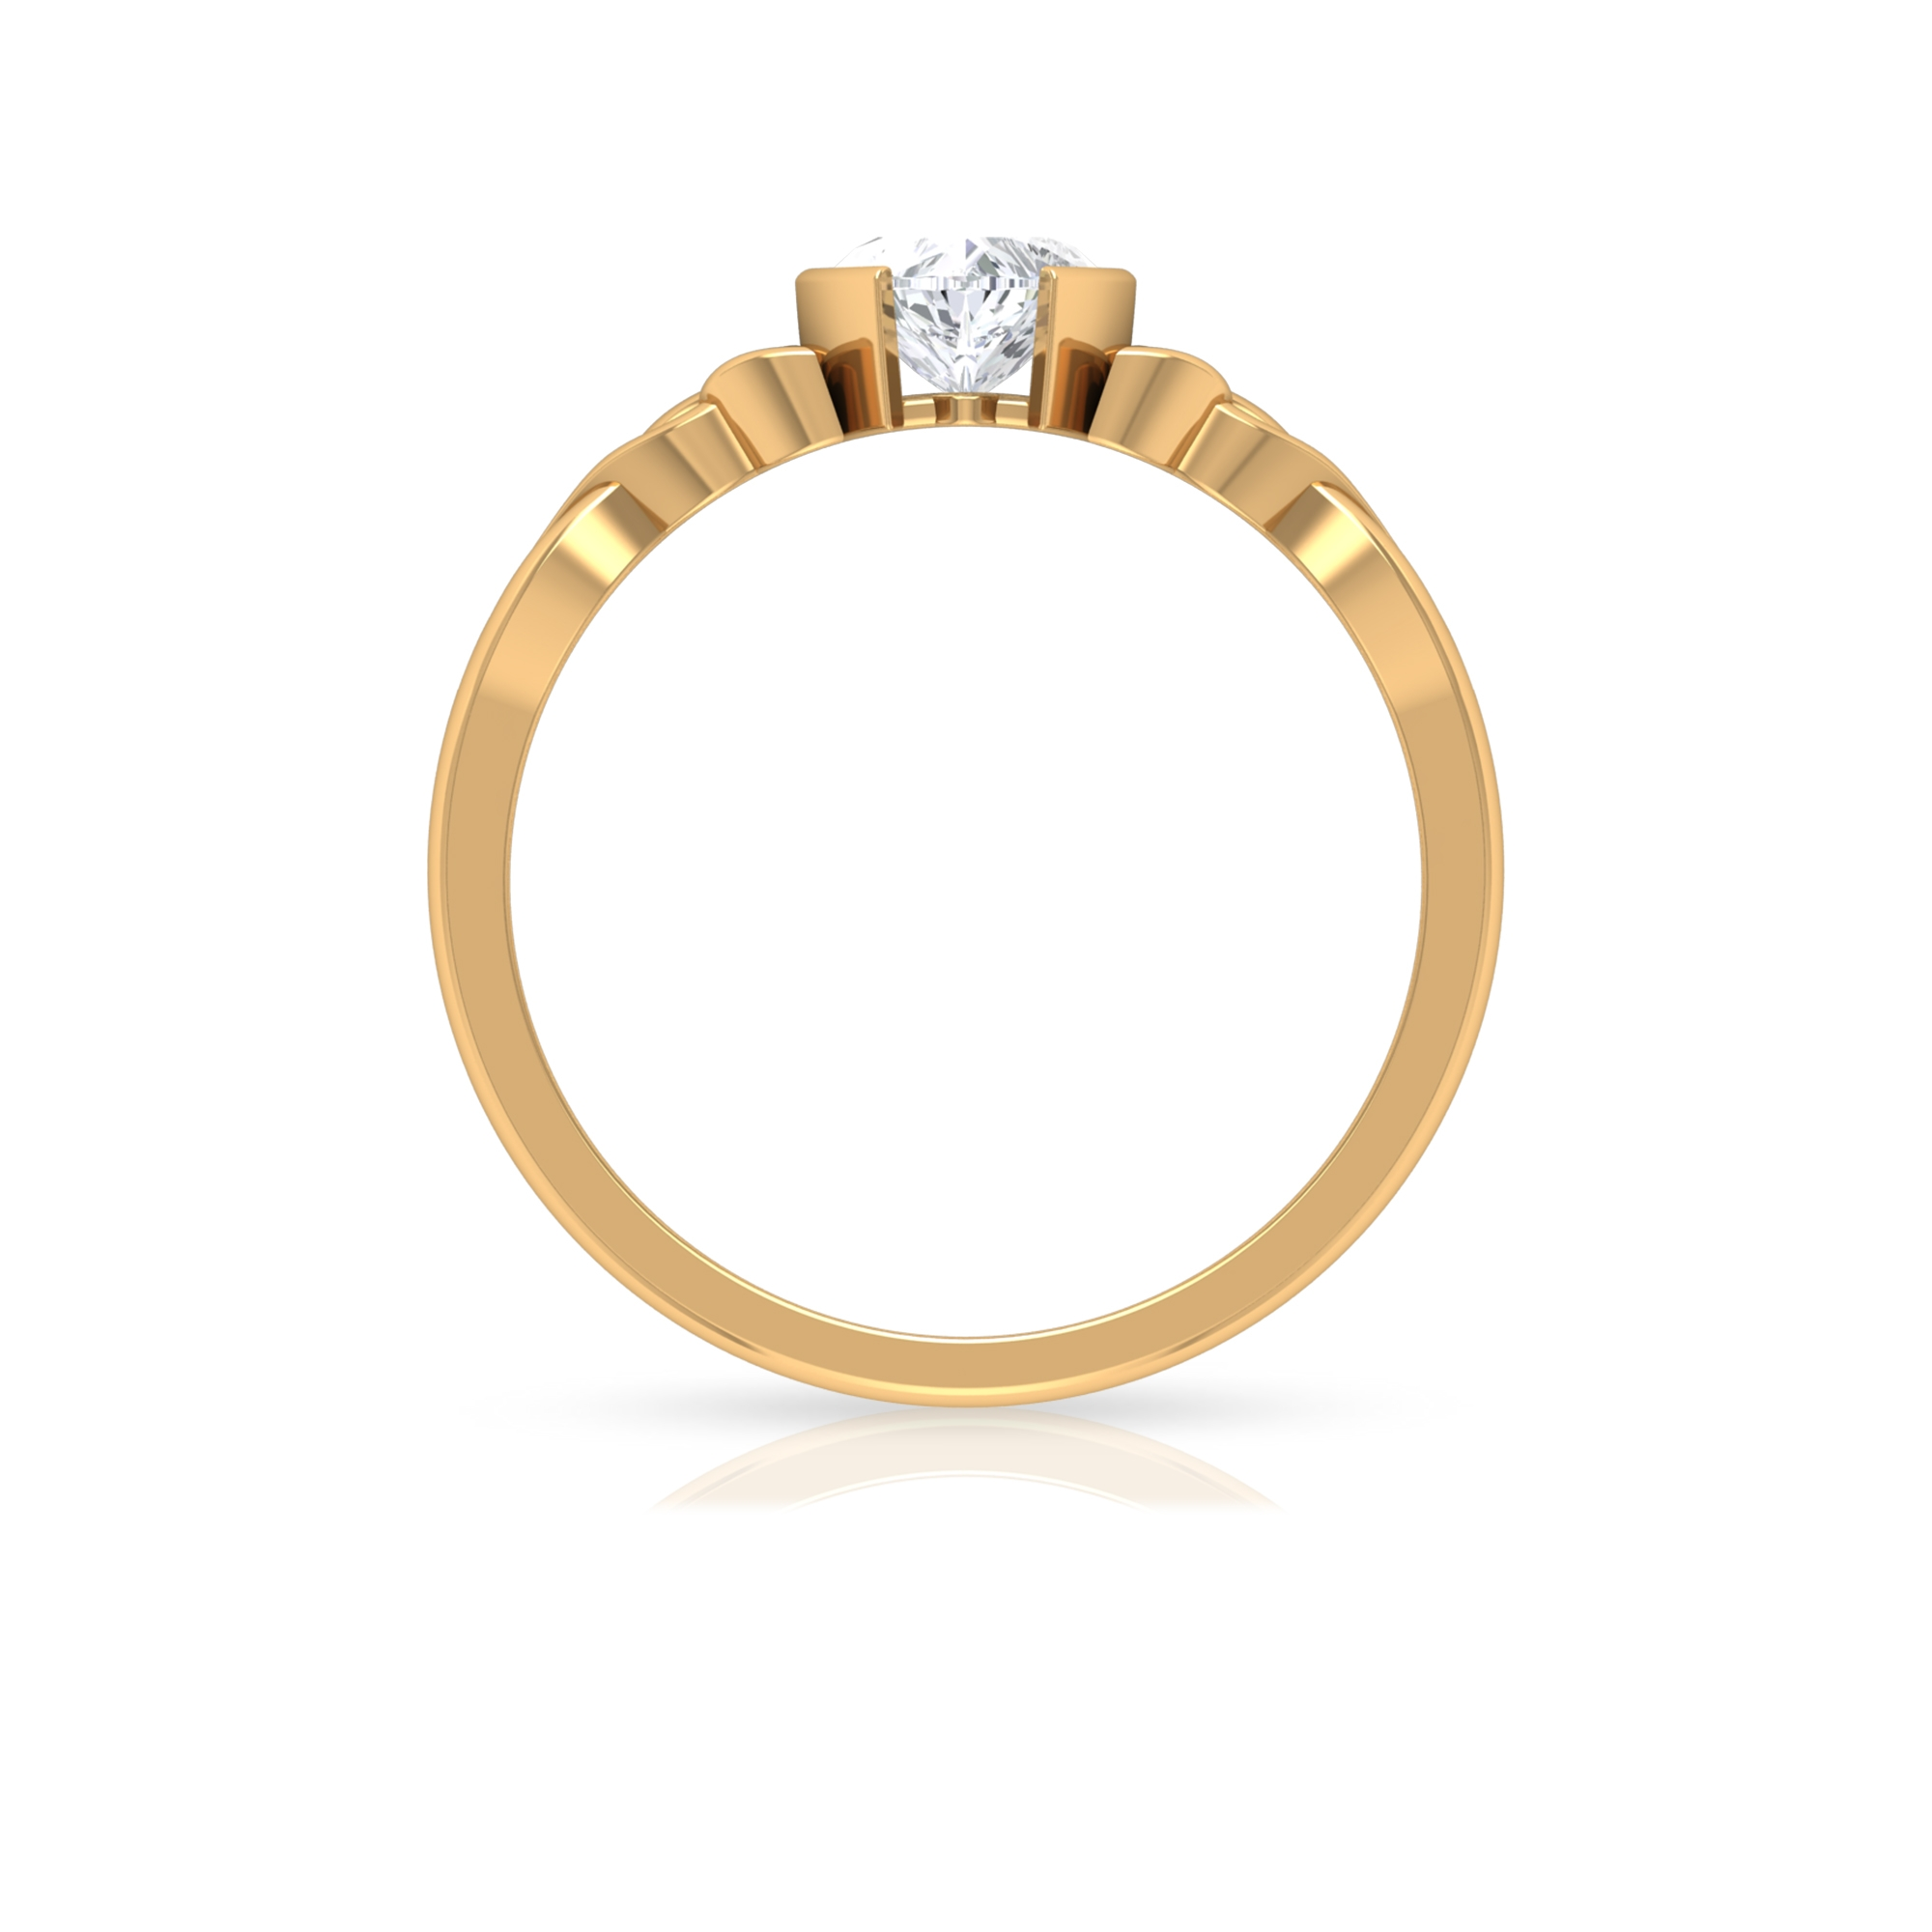 5.40 MM Heart Shape Diamond Solitaire Ring in Half Bezel Setting with Celtic Band